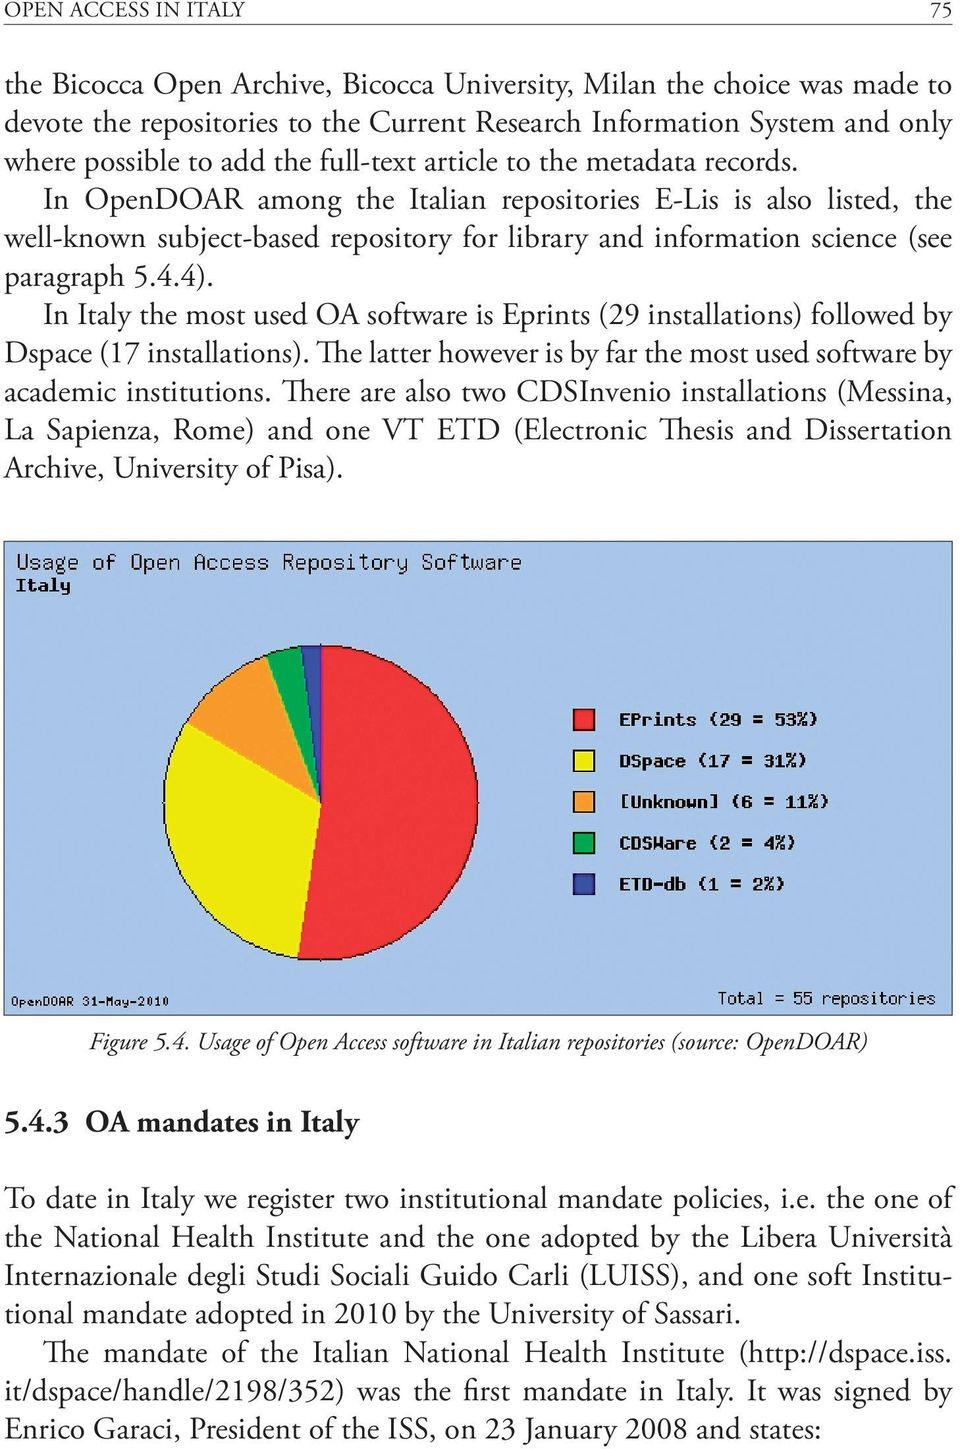 In OpenDOAR among the Italian repositories E-Lis is also listed, the well-known subject-based repository for library and information science (see paragraph 5.4.4).